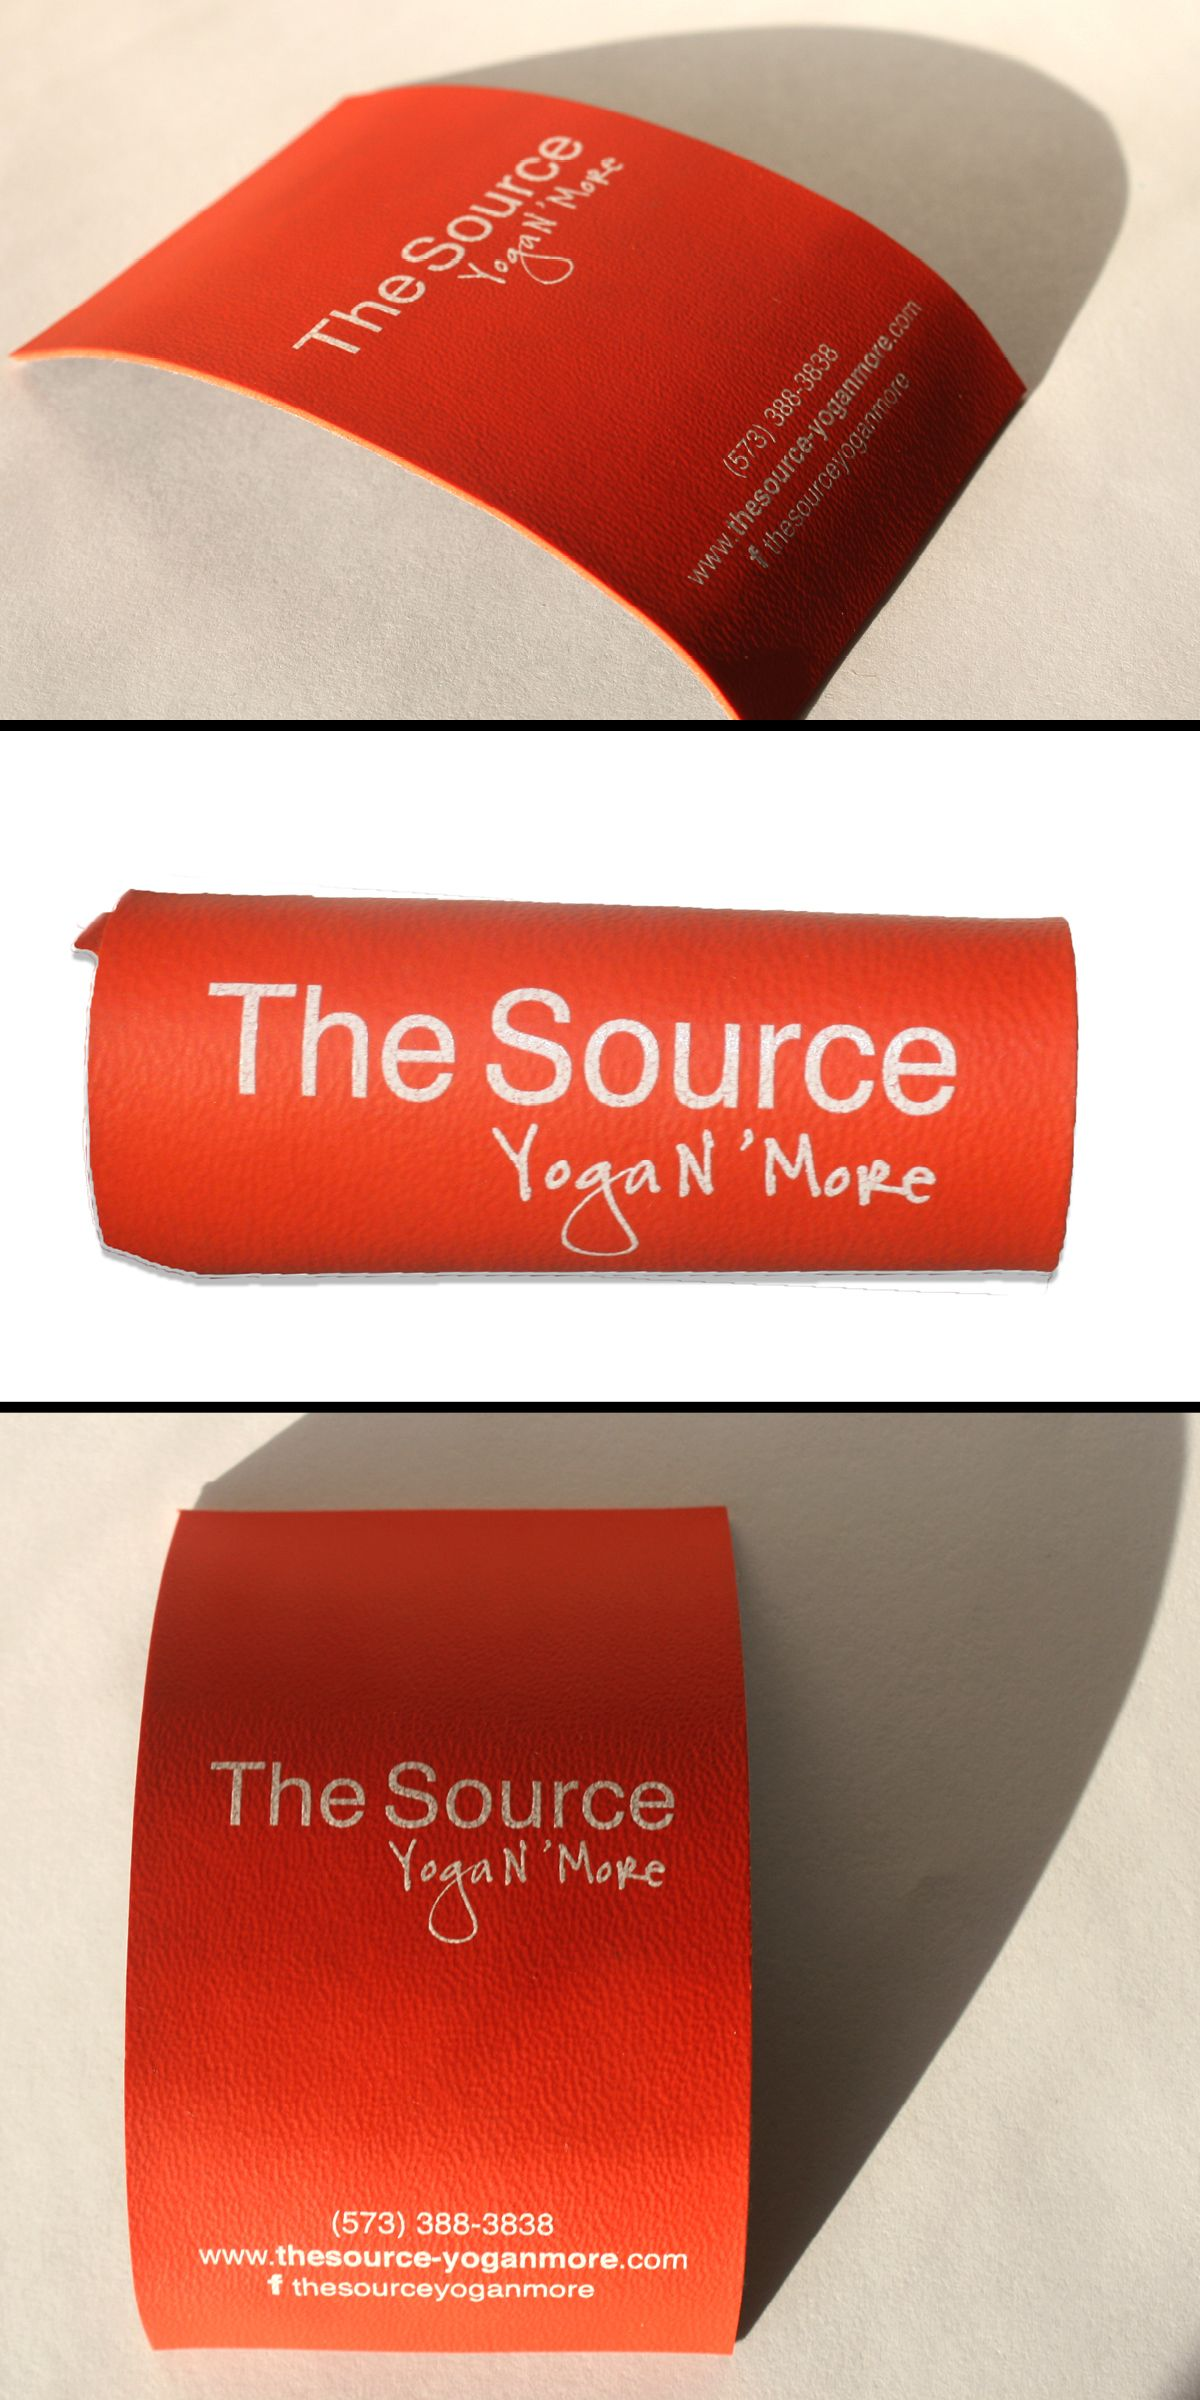 Yoga Mat Business Card | design and marketing | Pinterest | Business ...